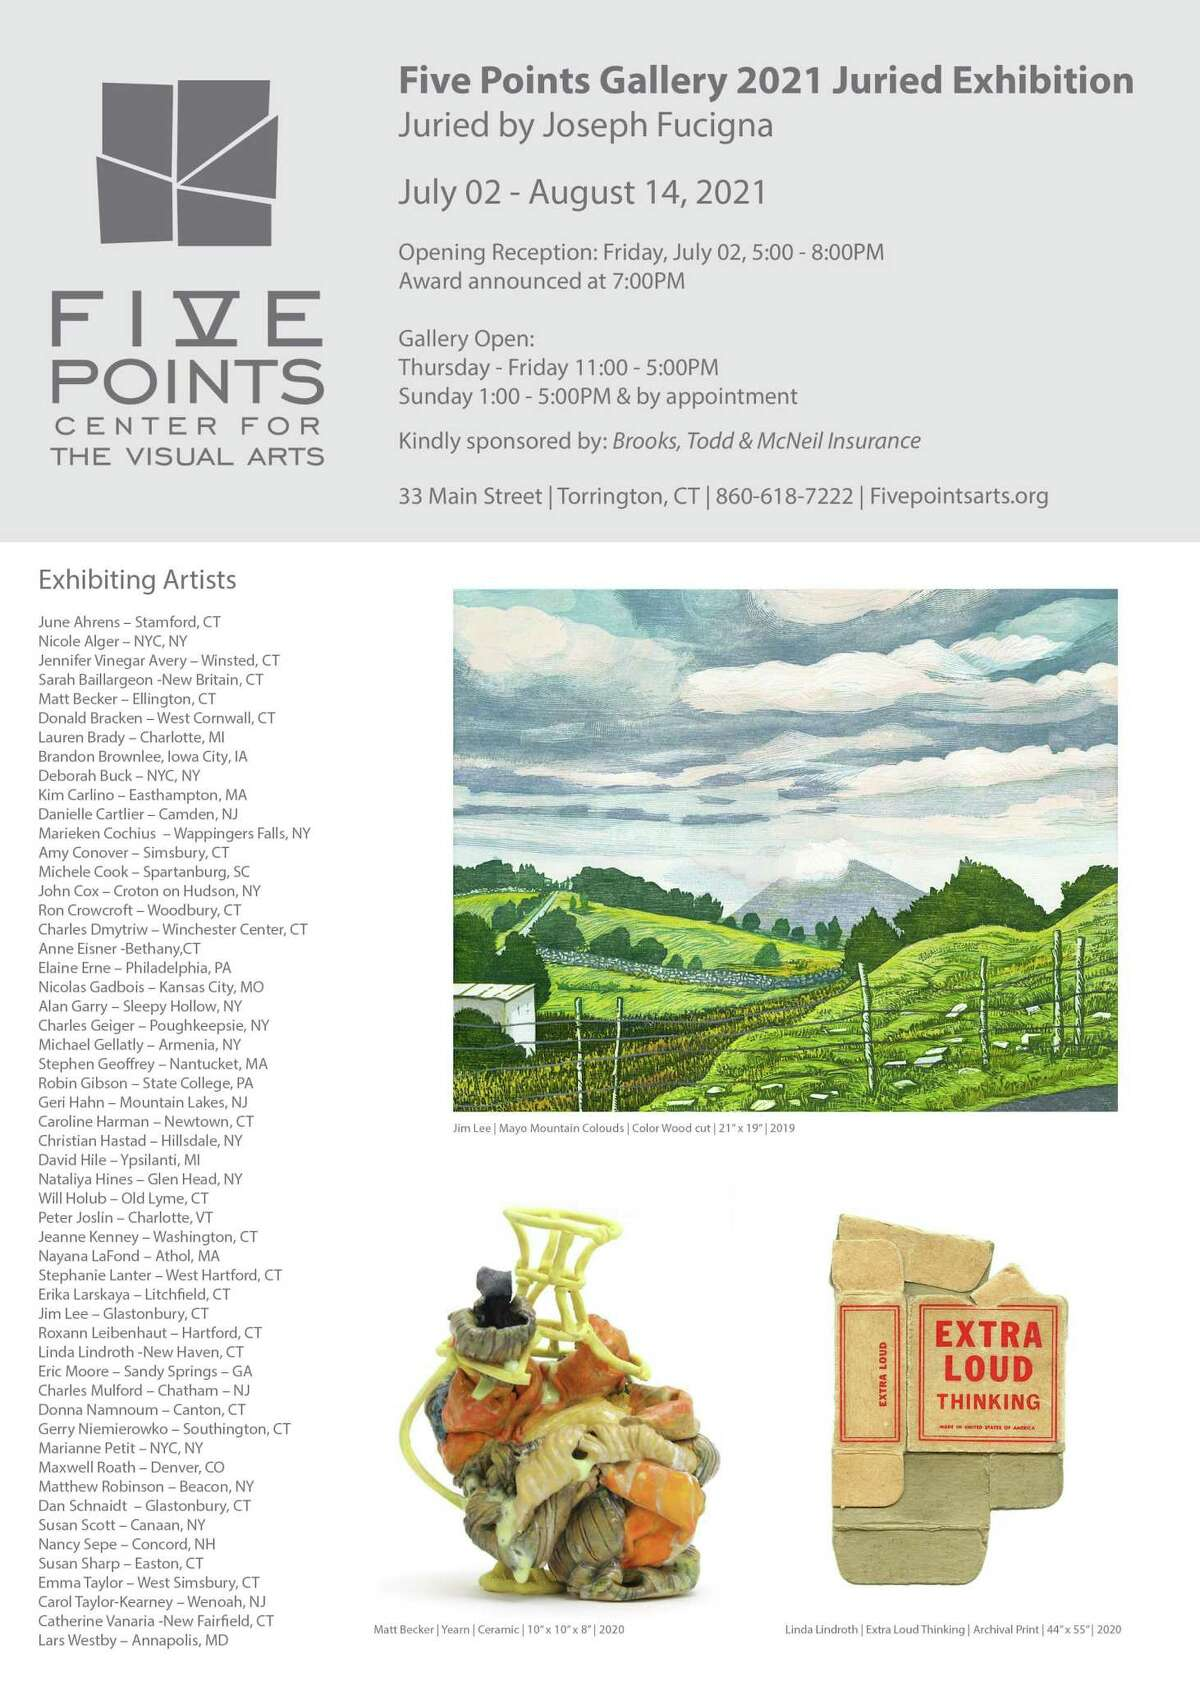 A new juried art show opens July 2 at Five Points Gallery, Torrington.